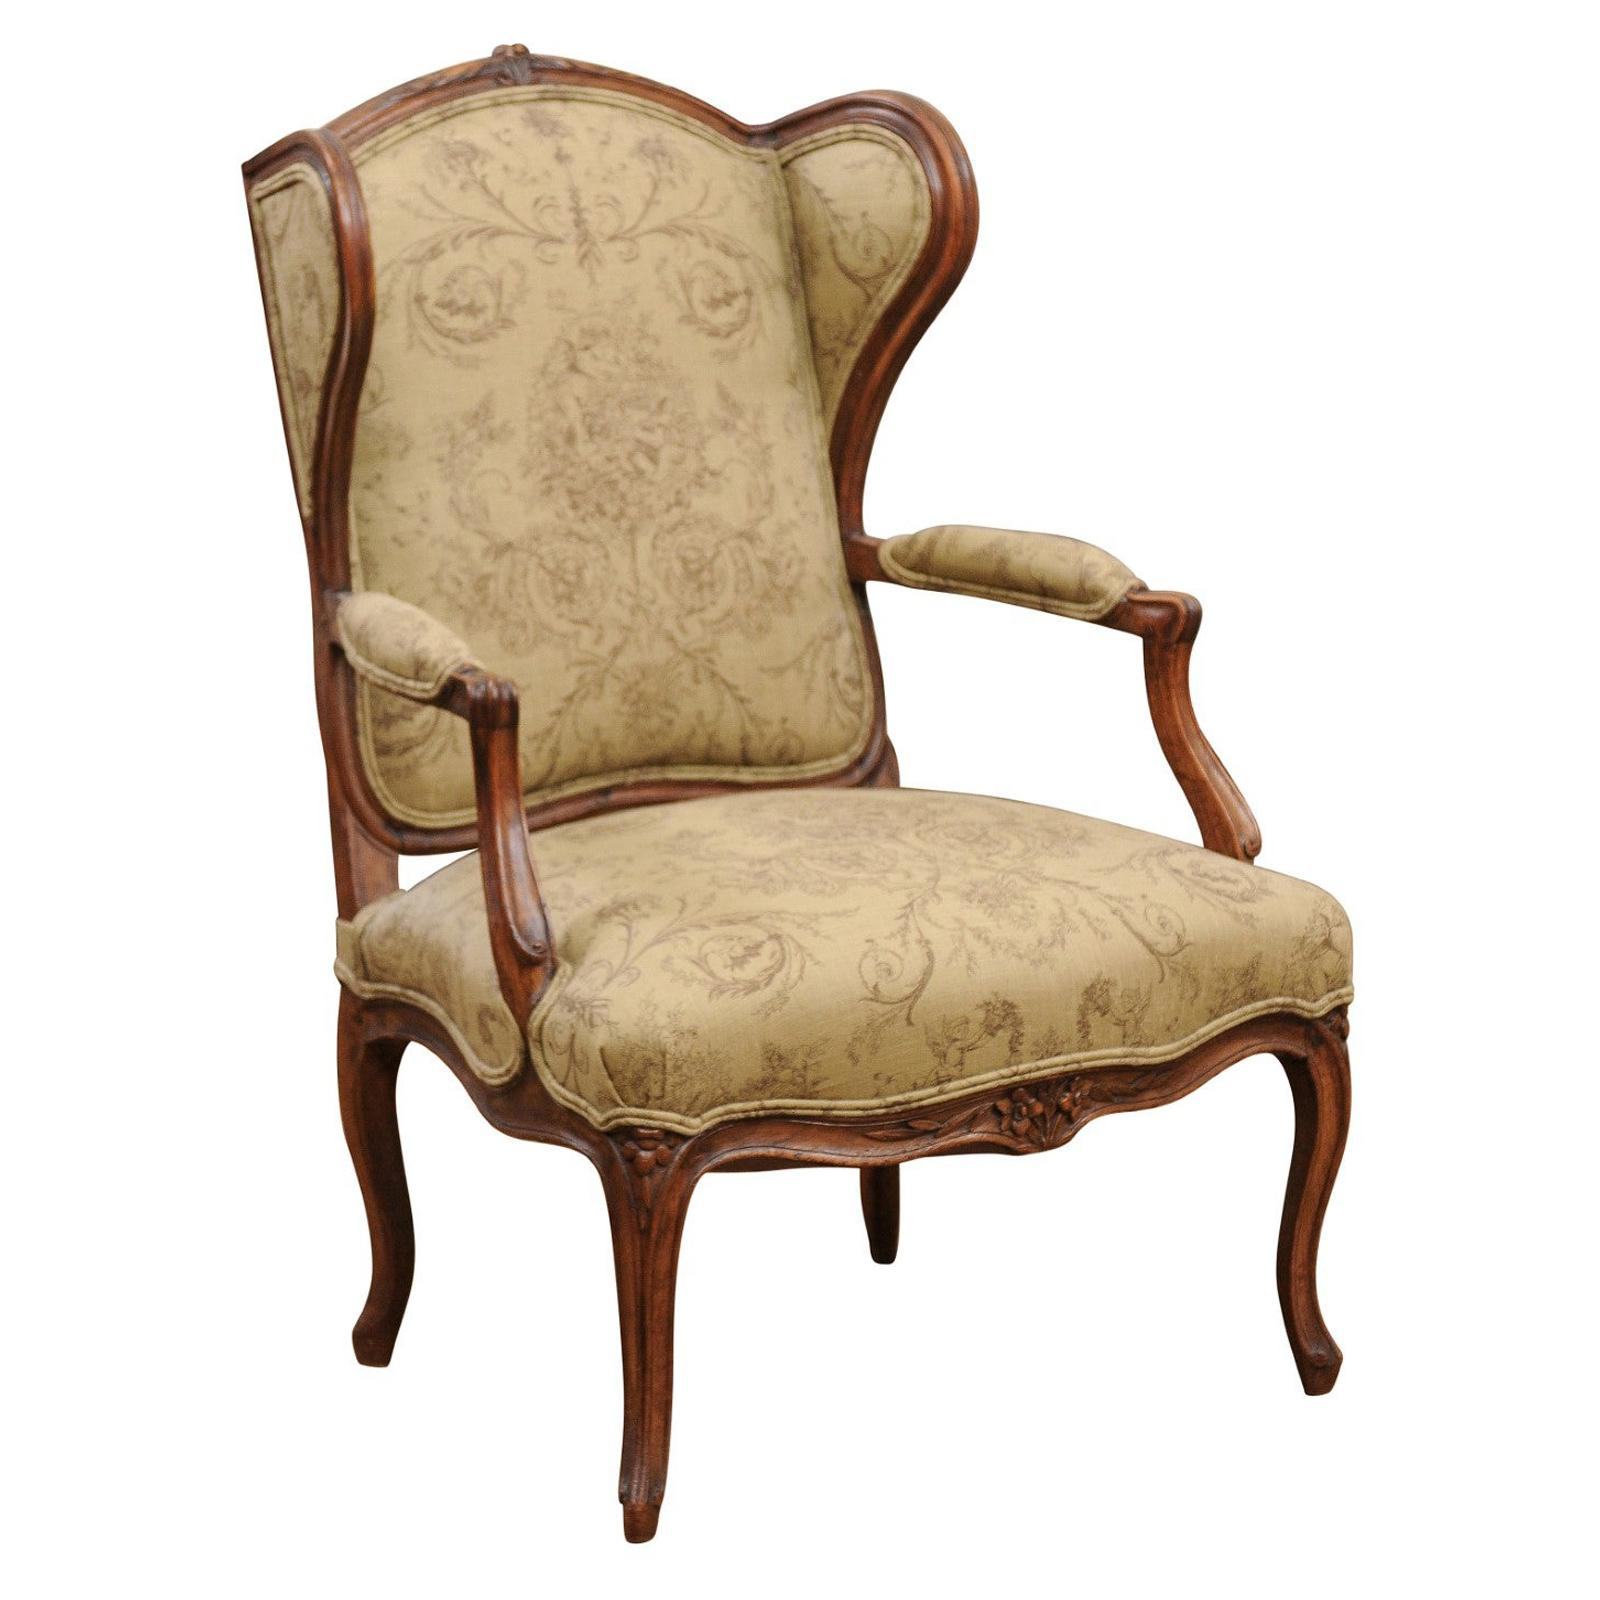 French Louis XV Style 1890s Wingback Chair with Upholstery and Carved Motifs